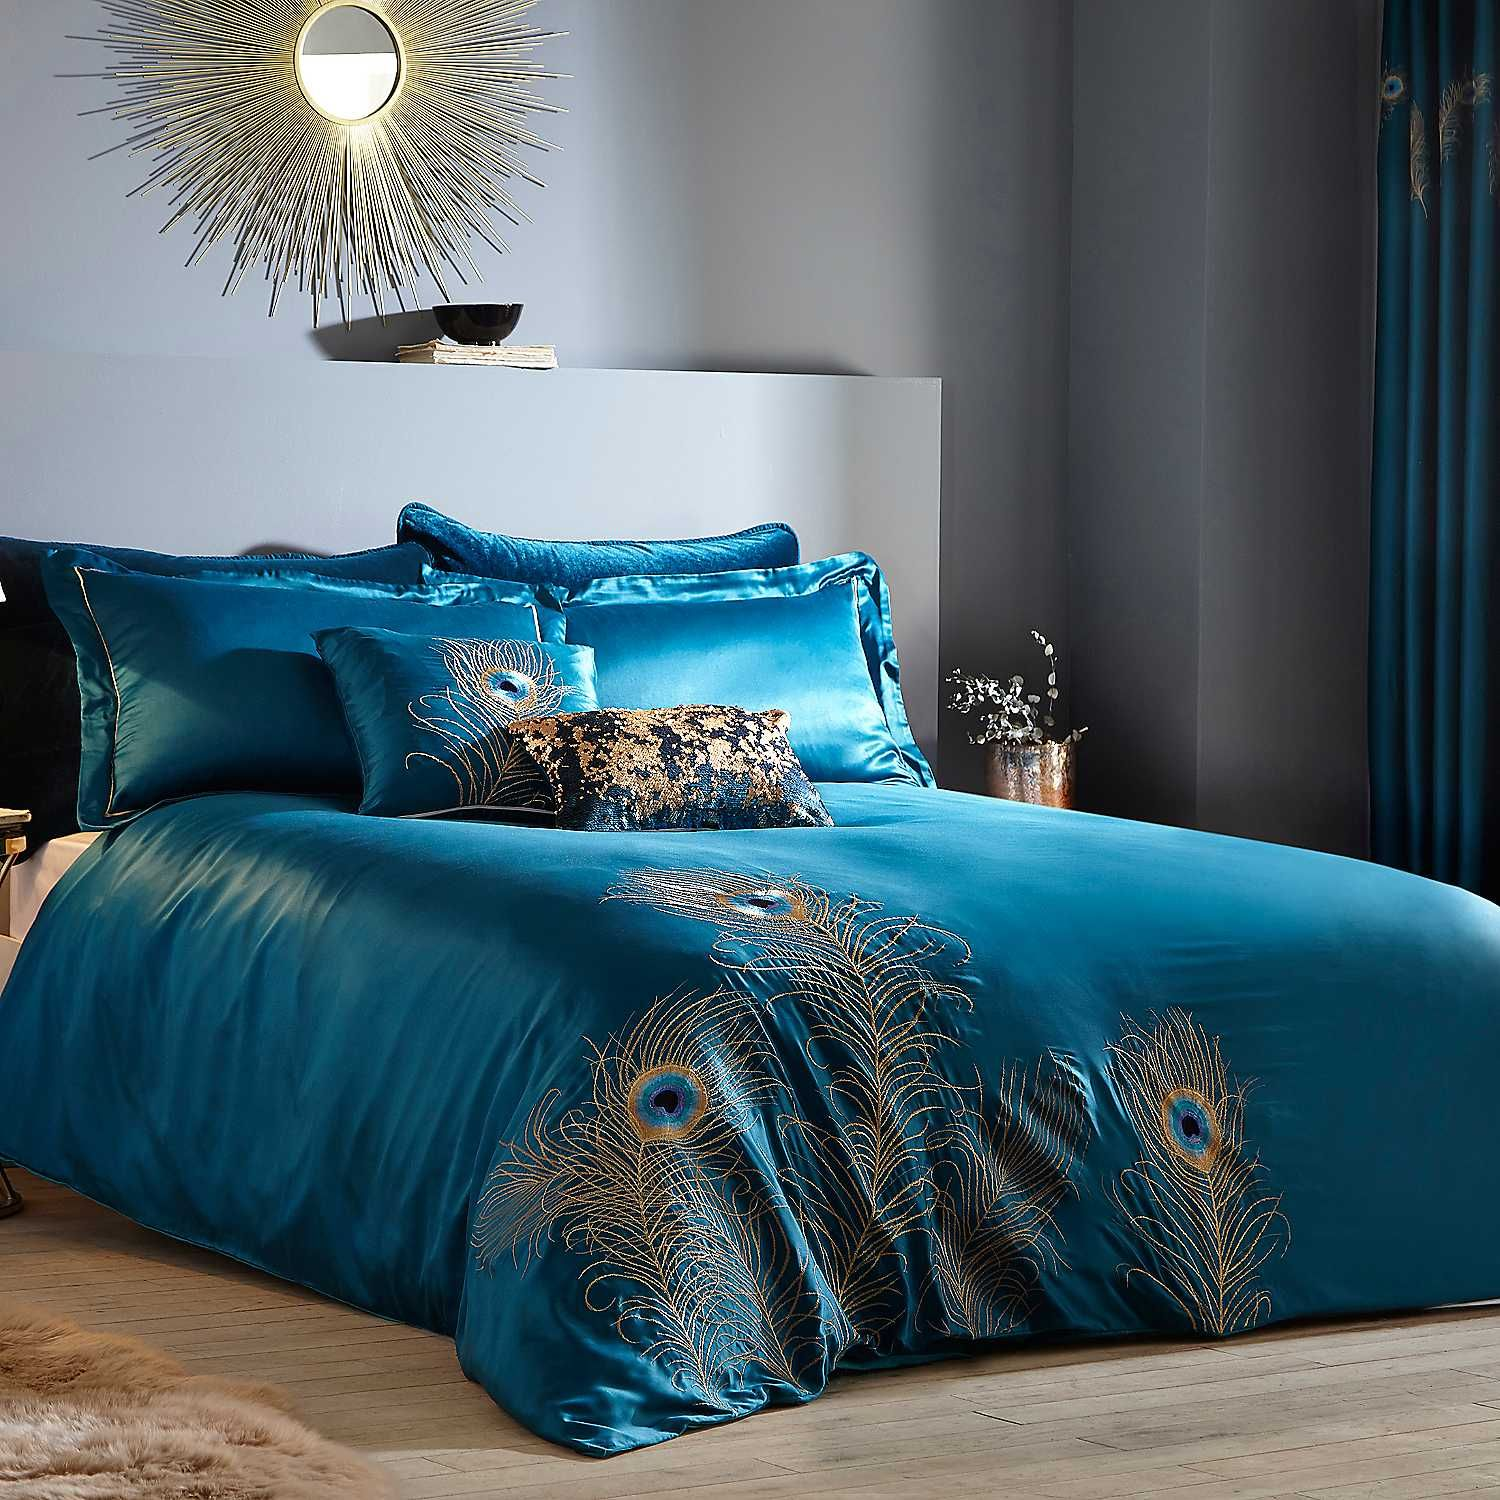 Peacock Feather Embroidered Teal Duvet Set Bed Linens Luxury Teal Bedding Sets Teal Duvet Cover